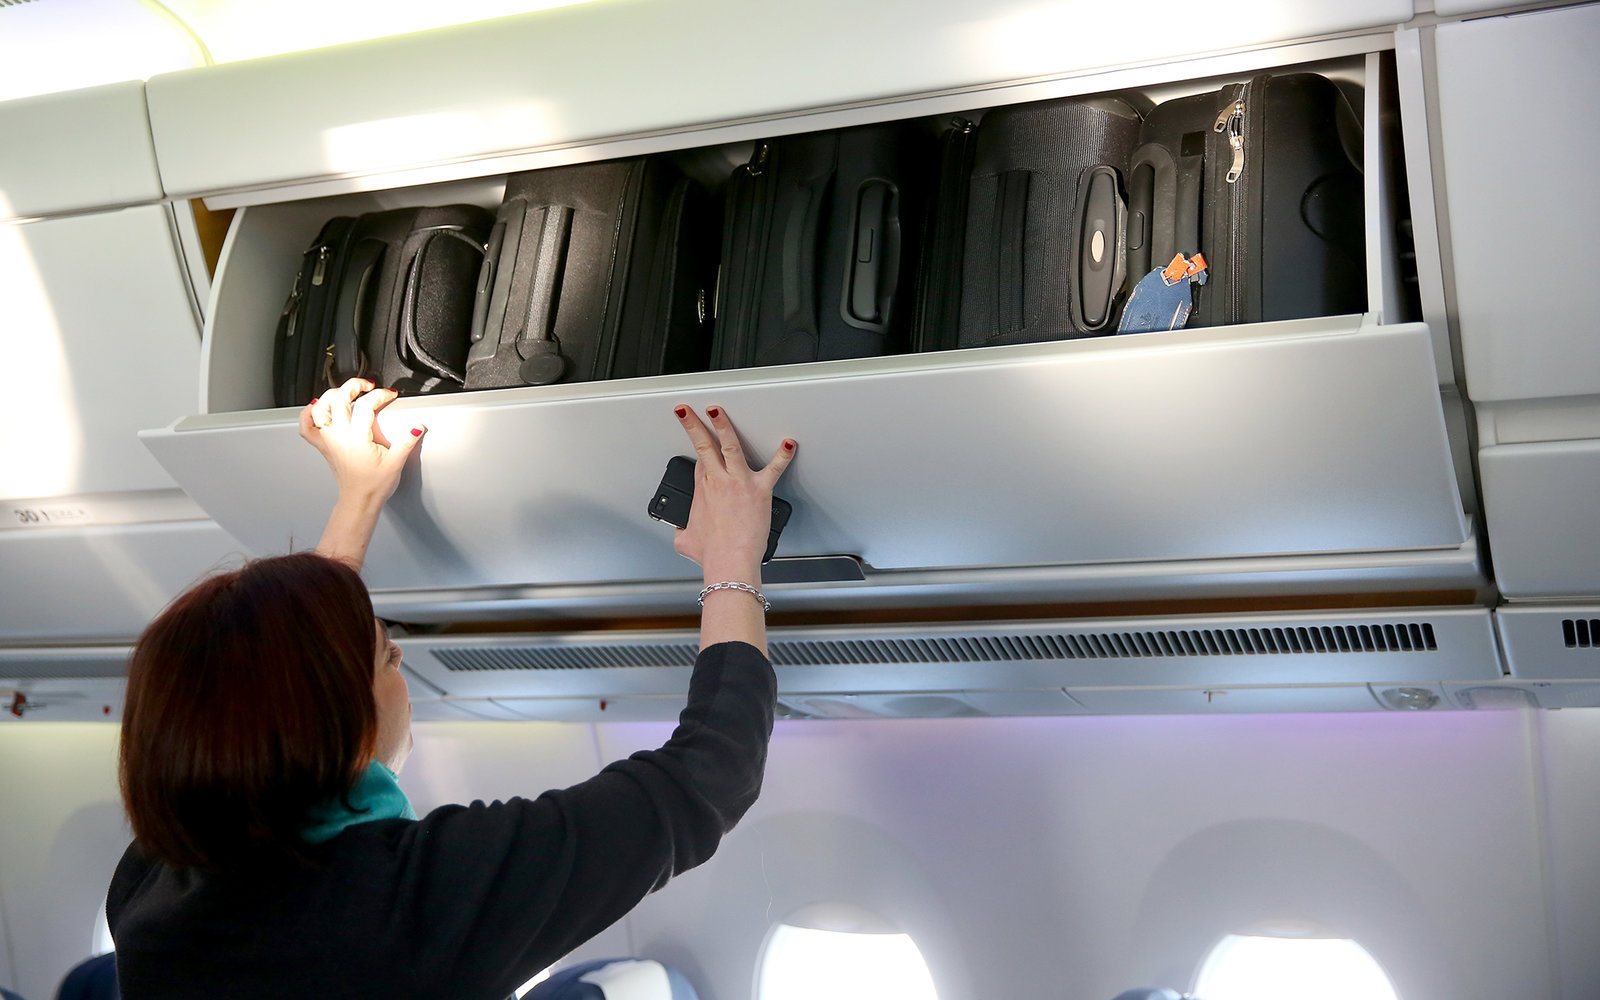 Overhead bin on airplane